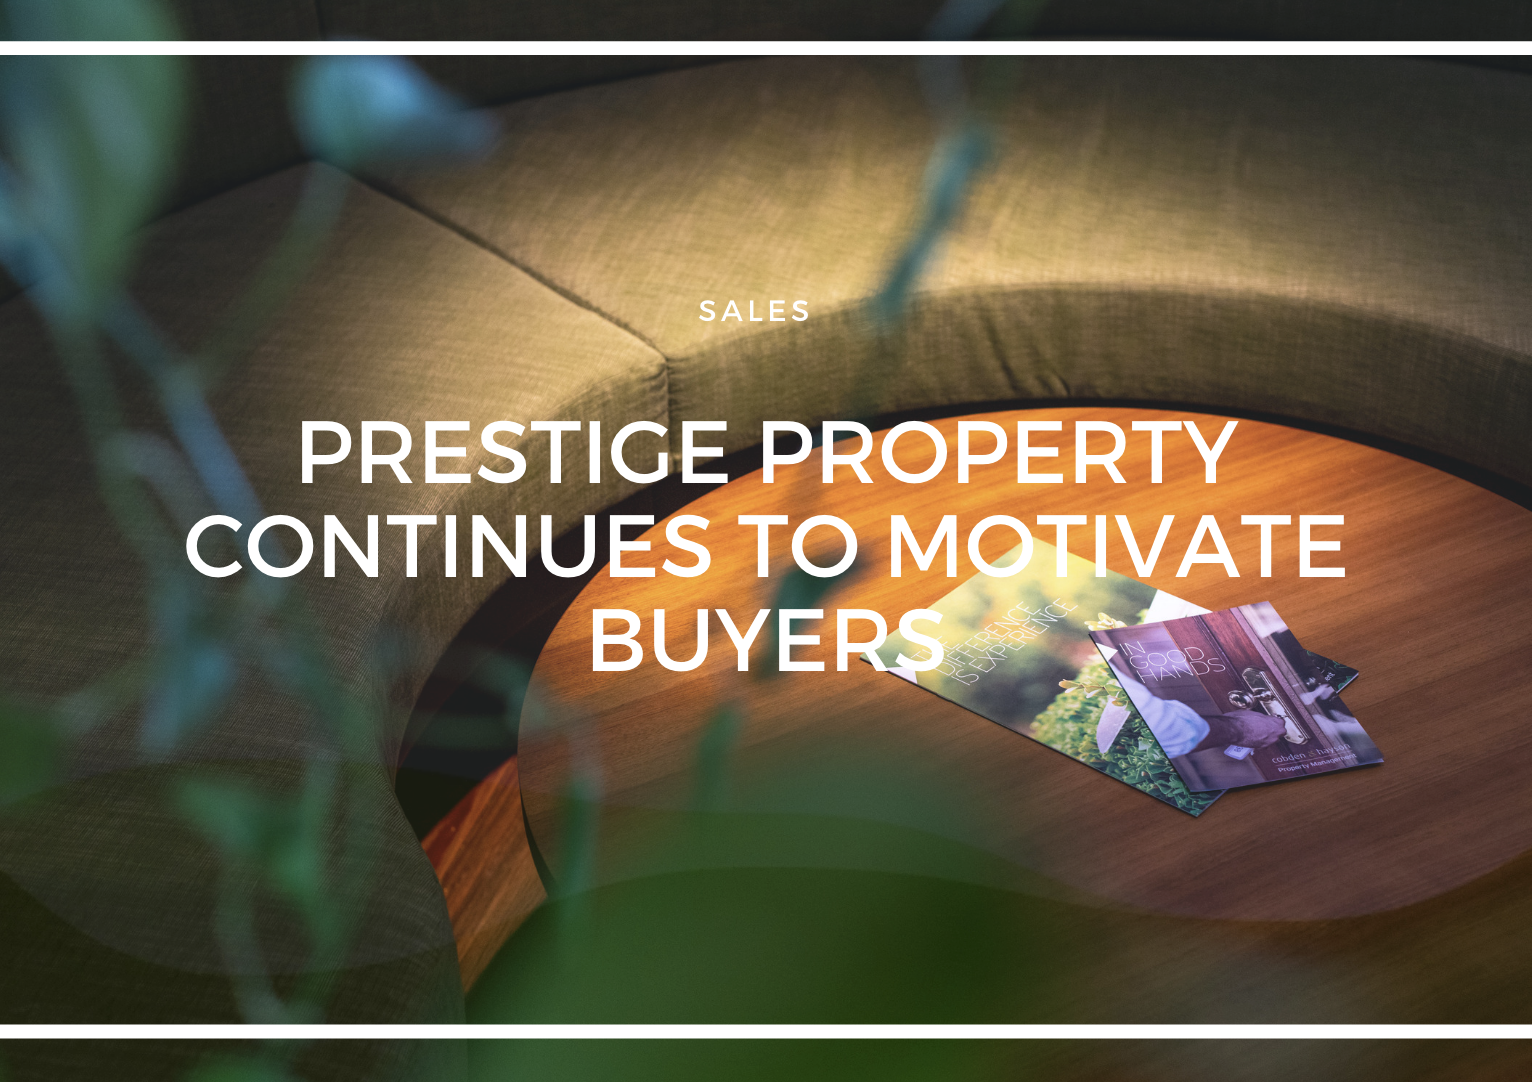 PRESTIGE PROPERTY CONTINUES TO MOTIVATE BUYERS